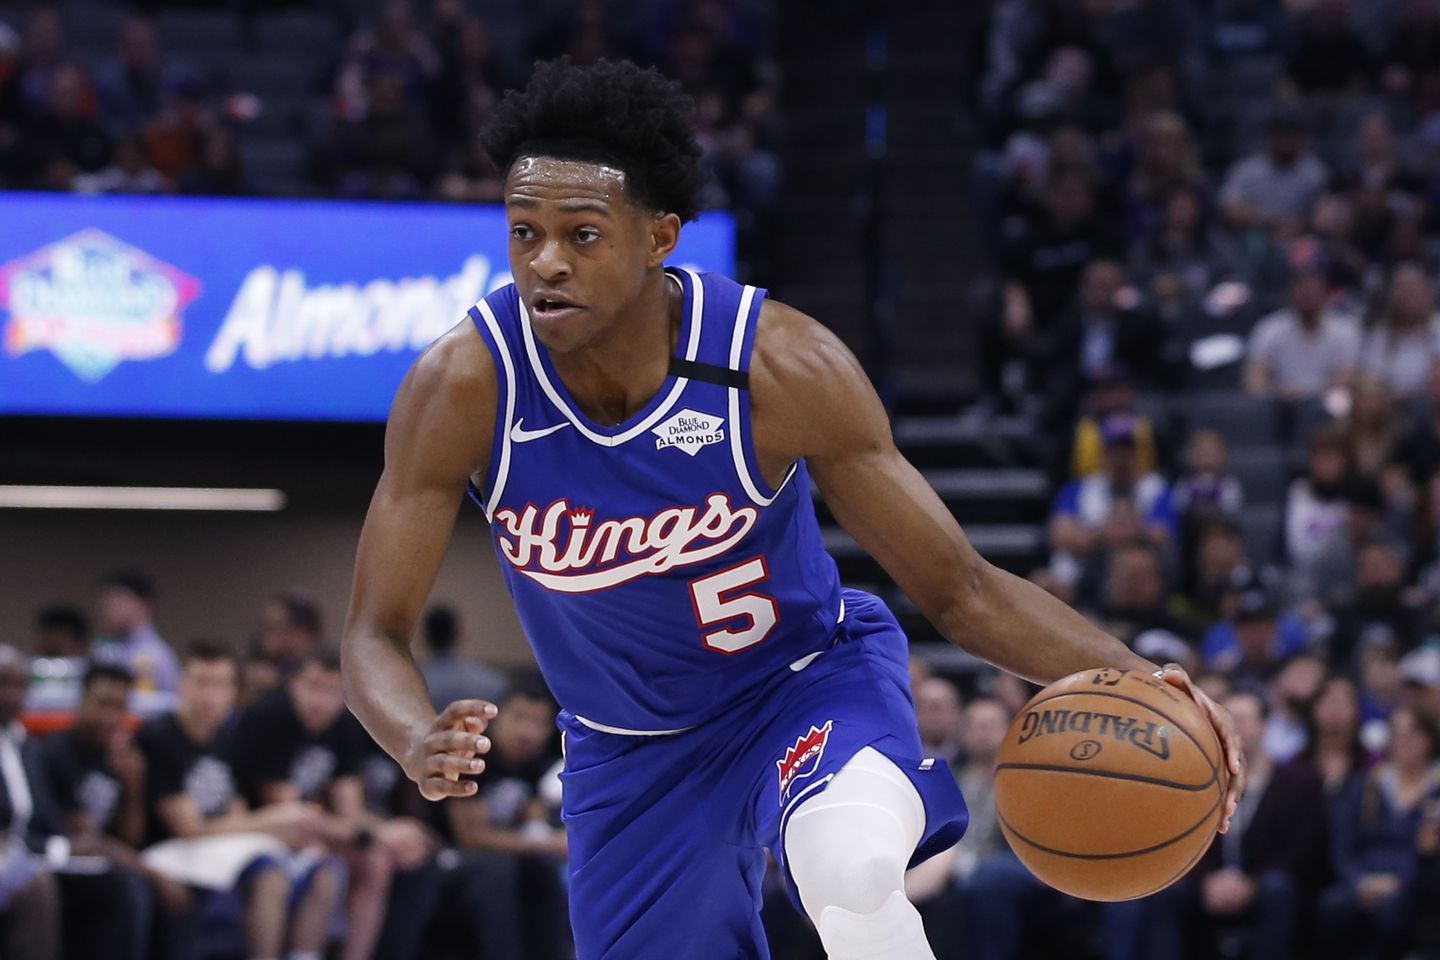 De'Aaron Fox gets max deal, possibly worth as much as $200m, to stay with Kings - The Boston Globe